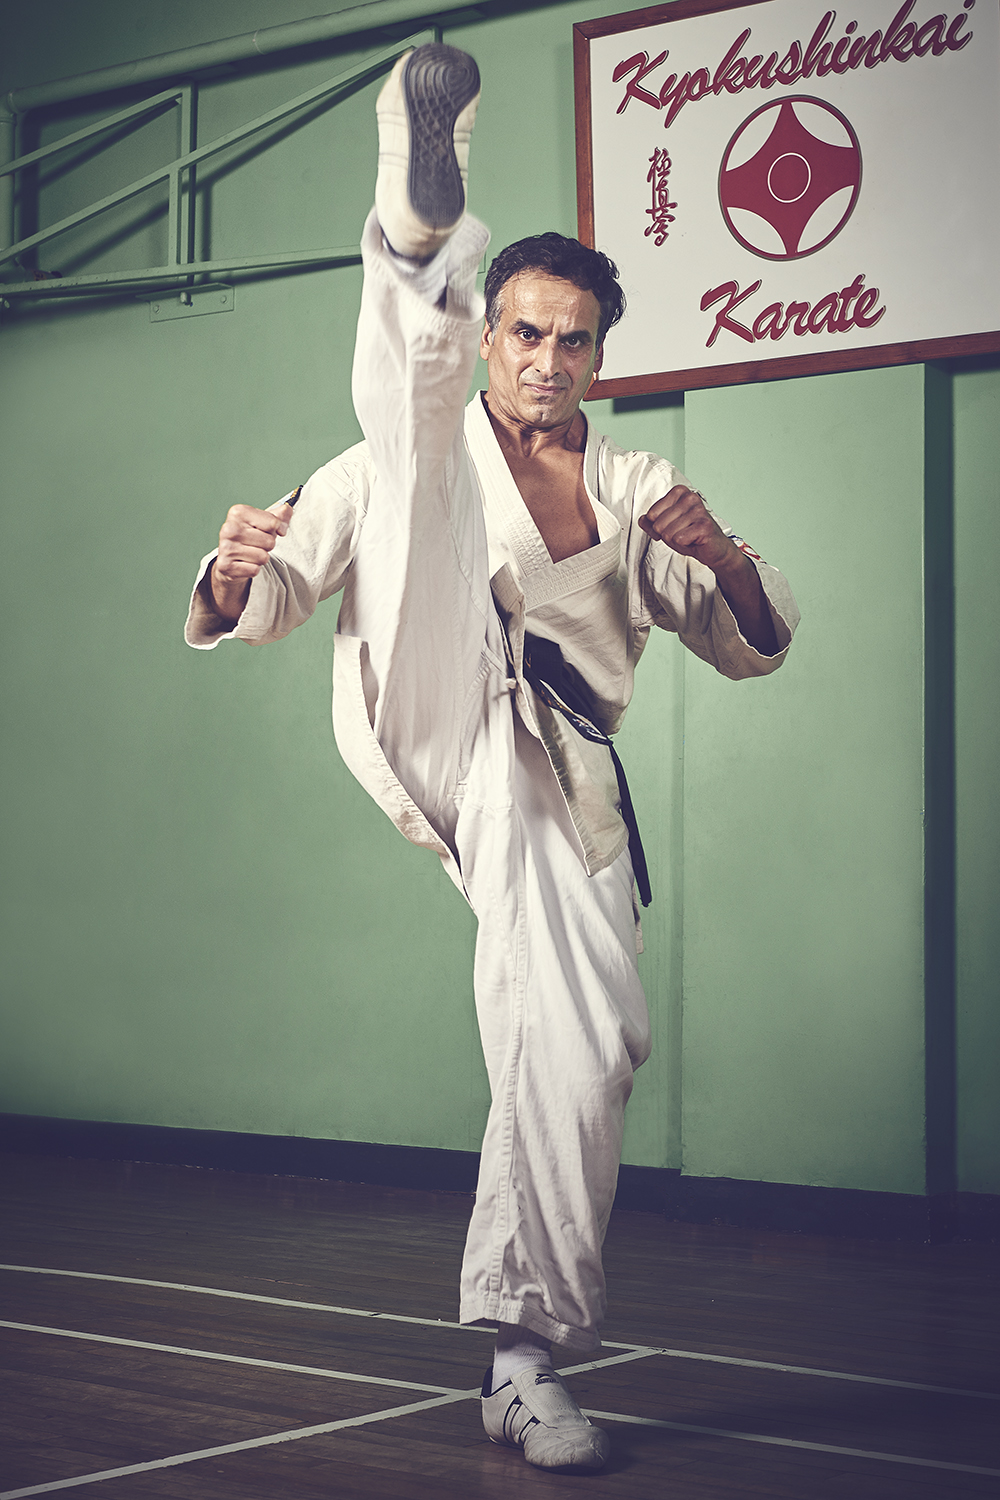 103_Waitrose_karate_132_LRTSSF_WEB.jpg